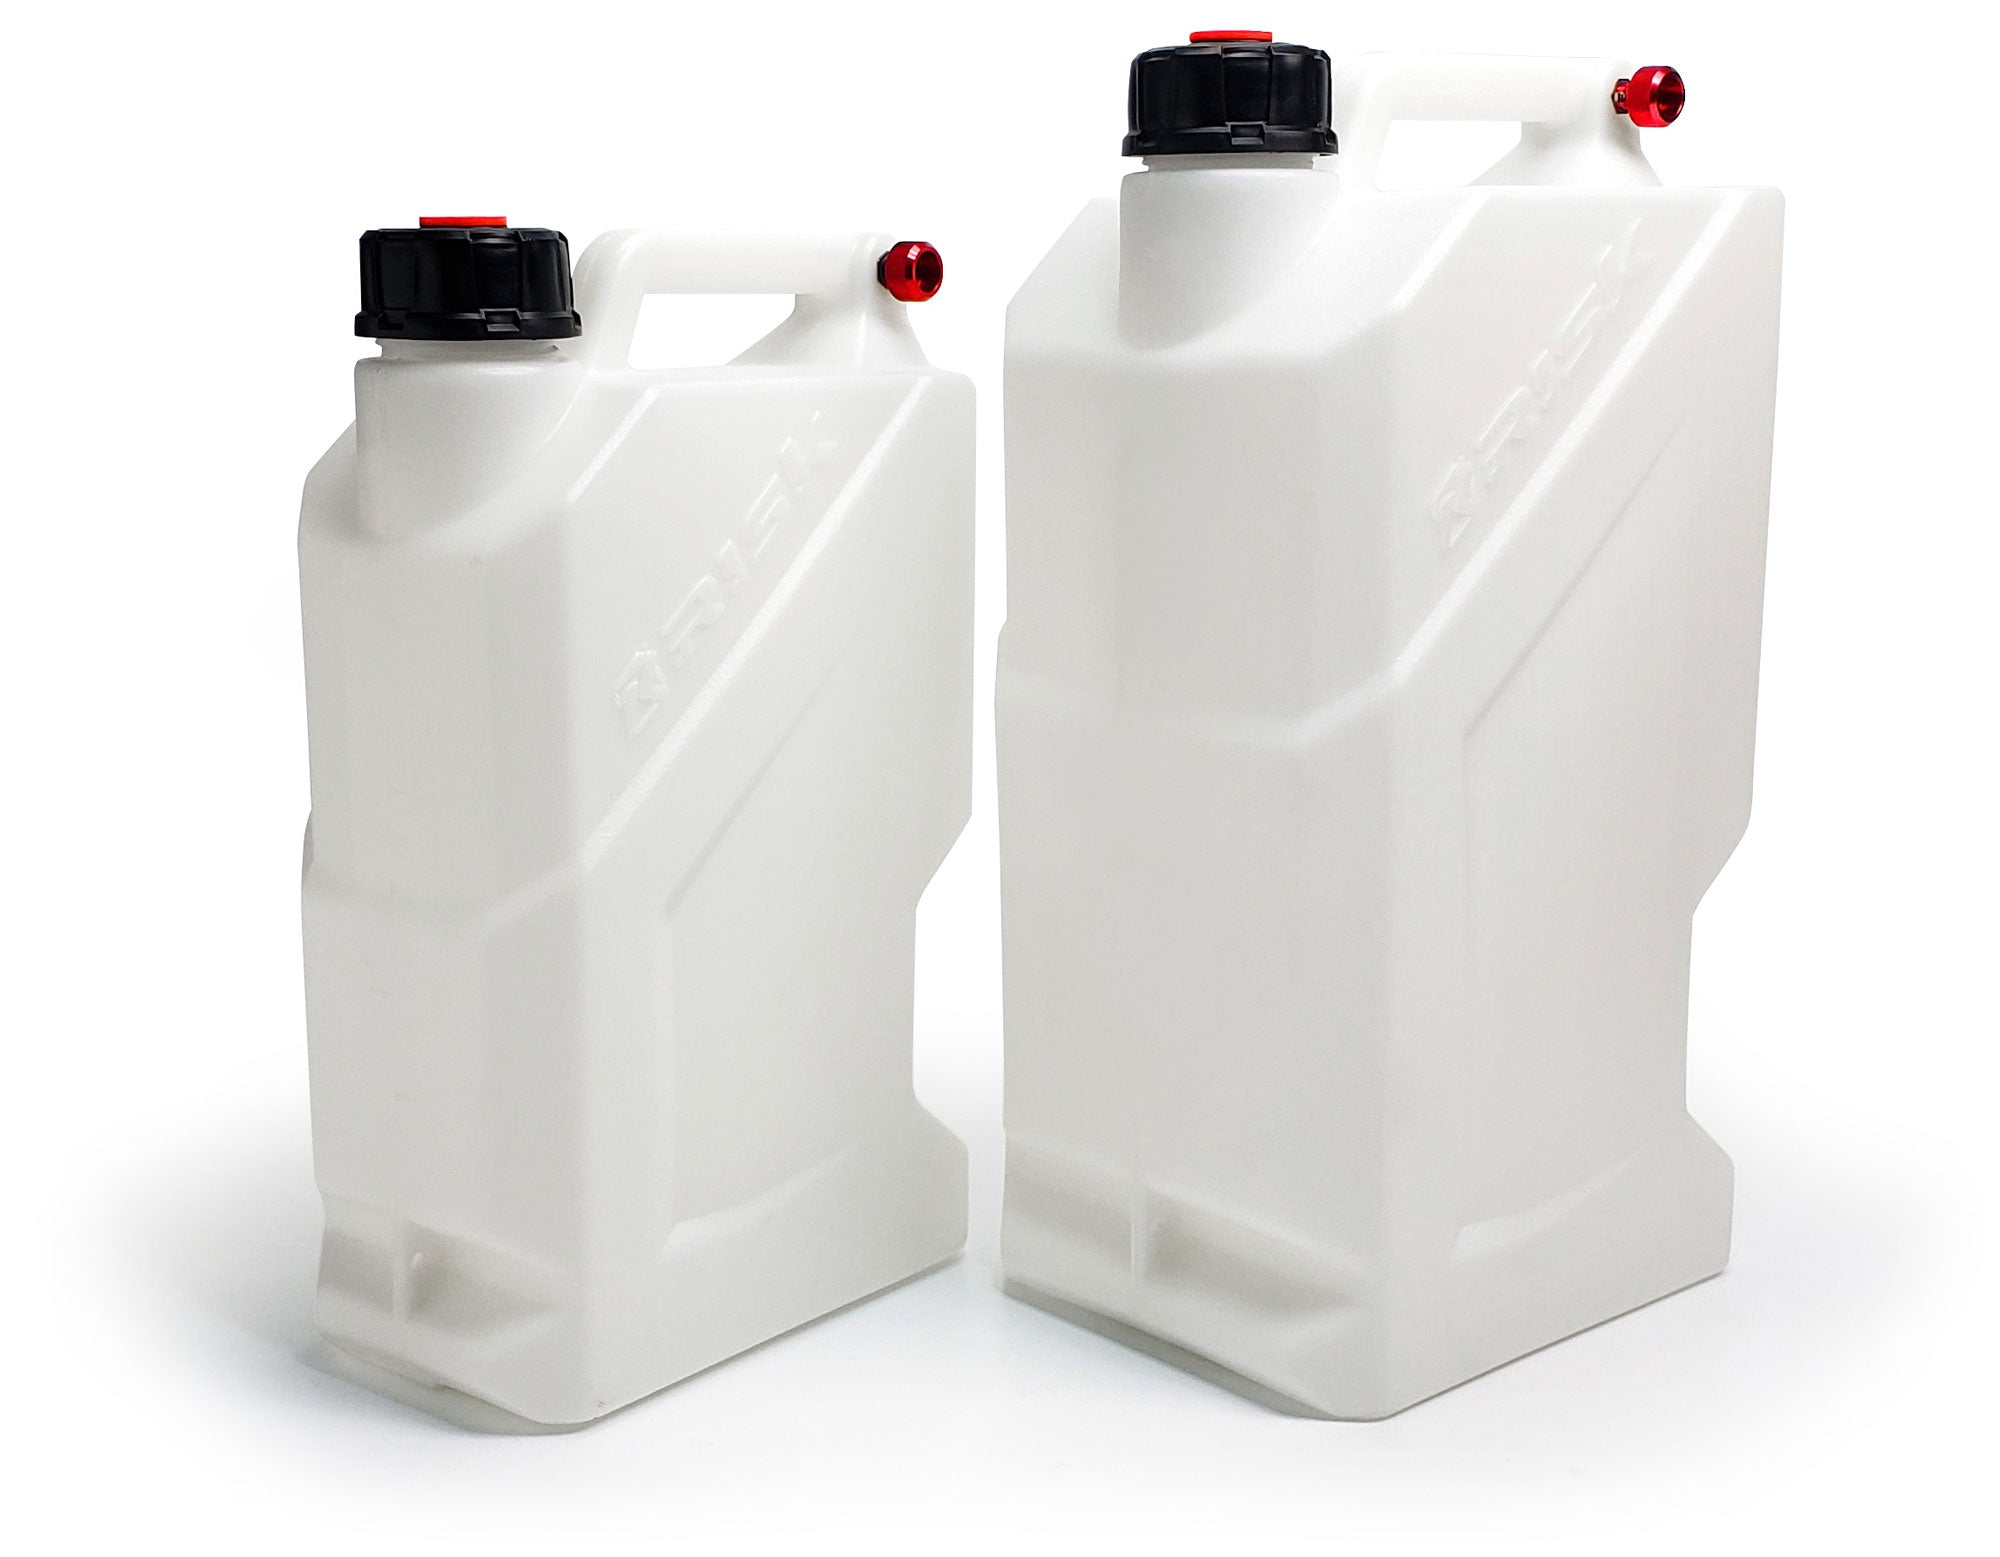 Risk Racing EZ3 3 Gallon and EZ5 5 Gallon Utility Jug